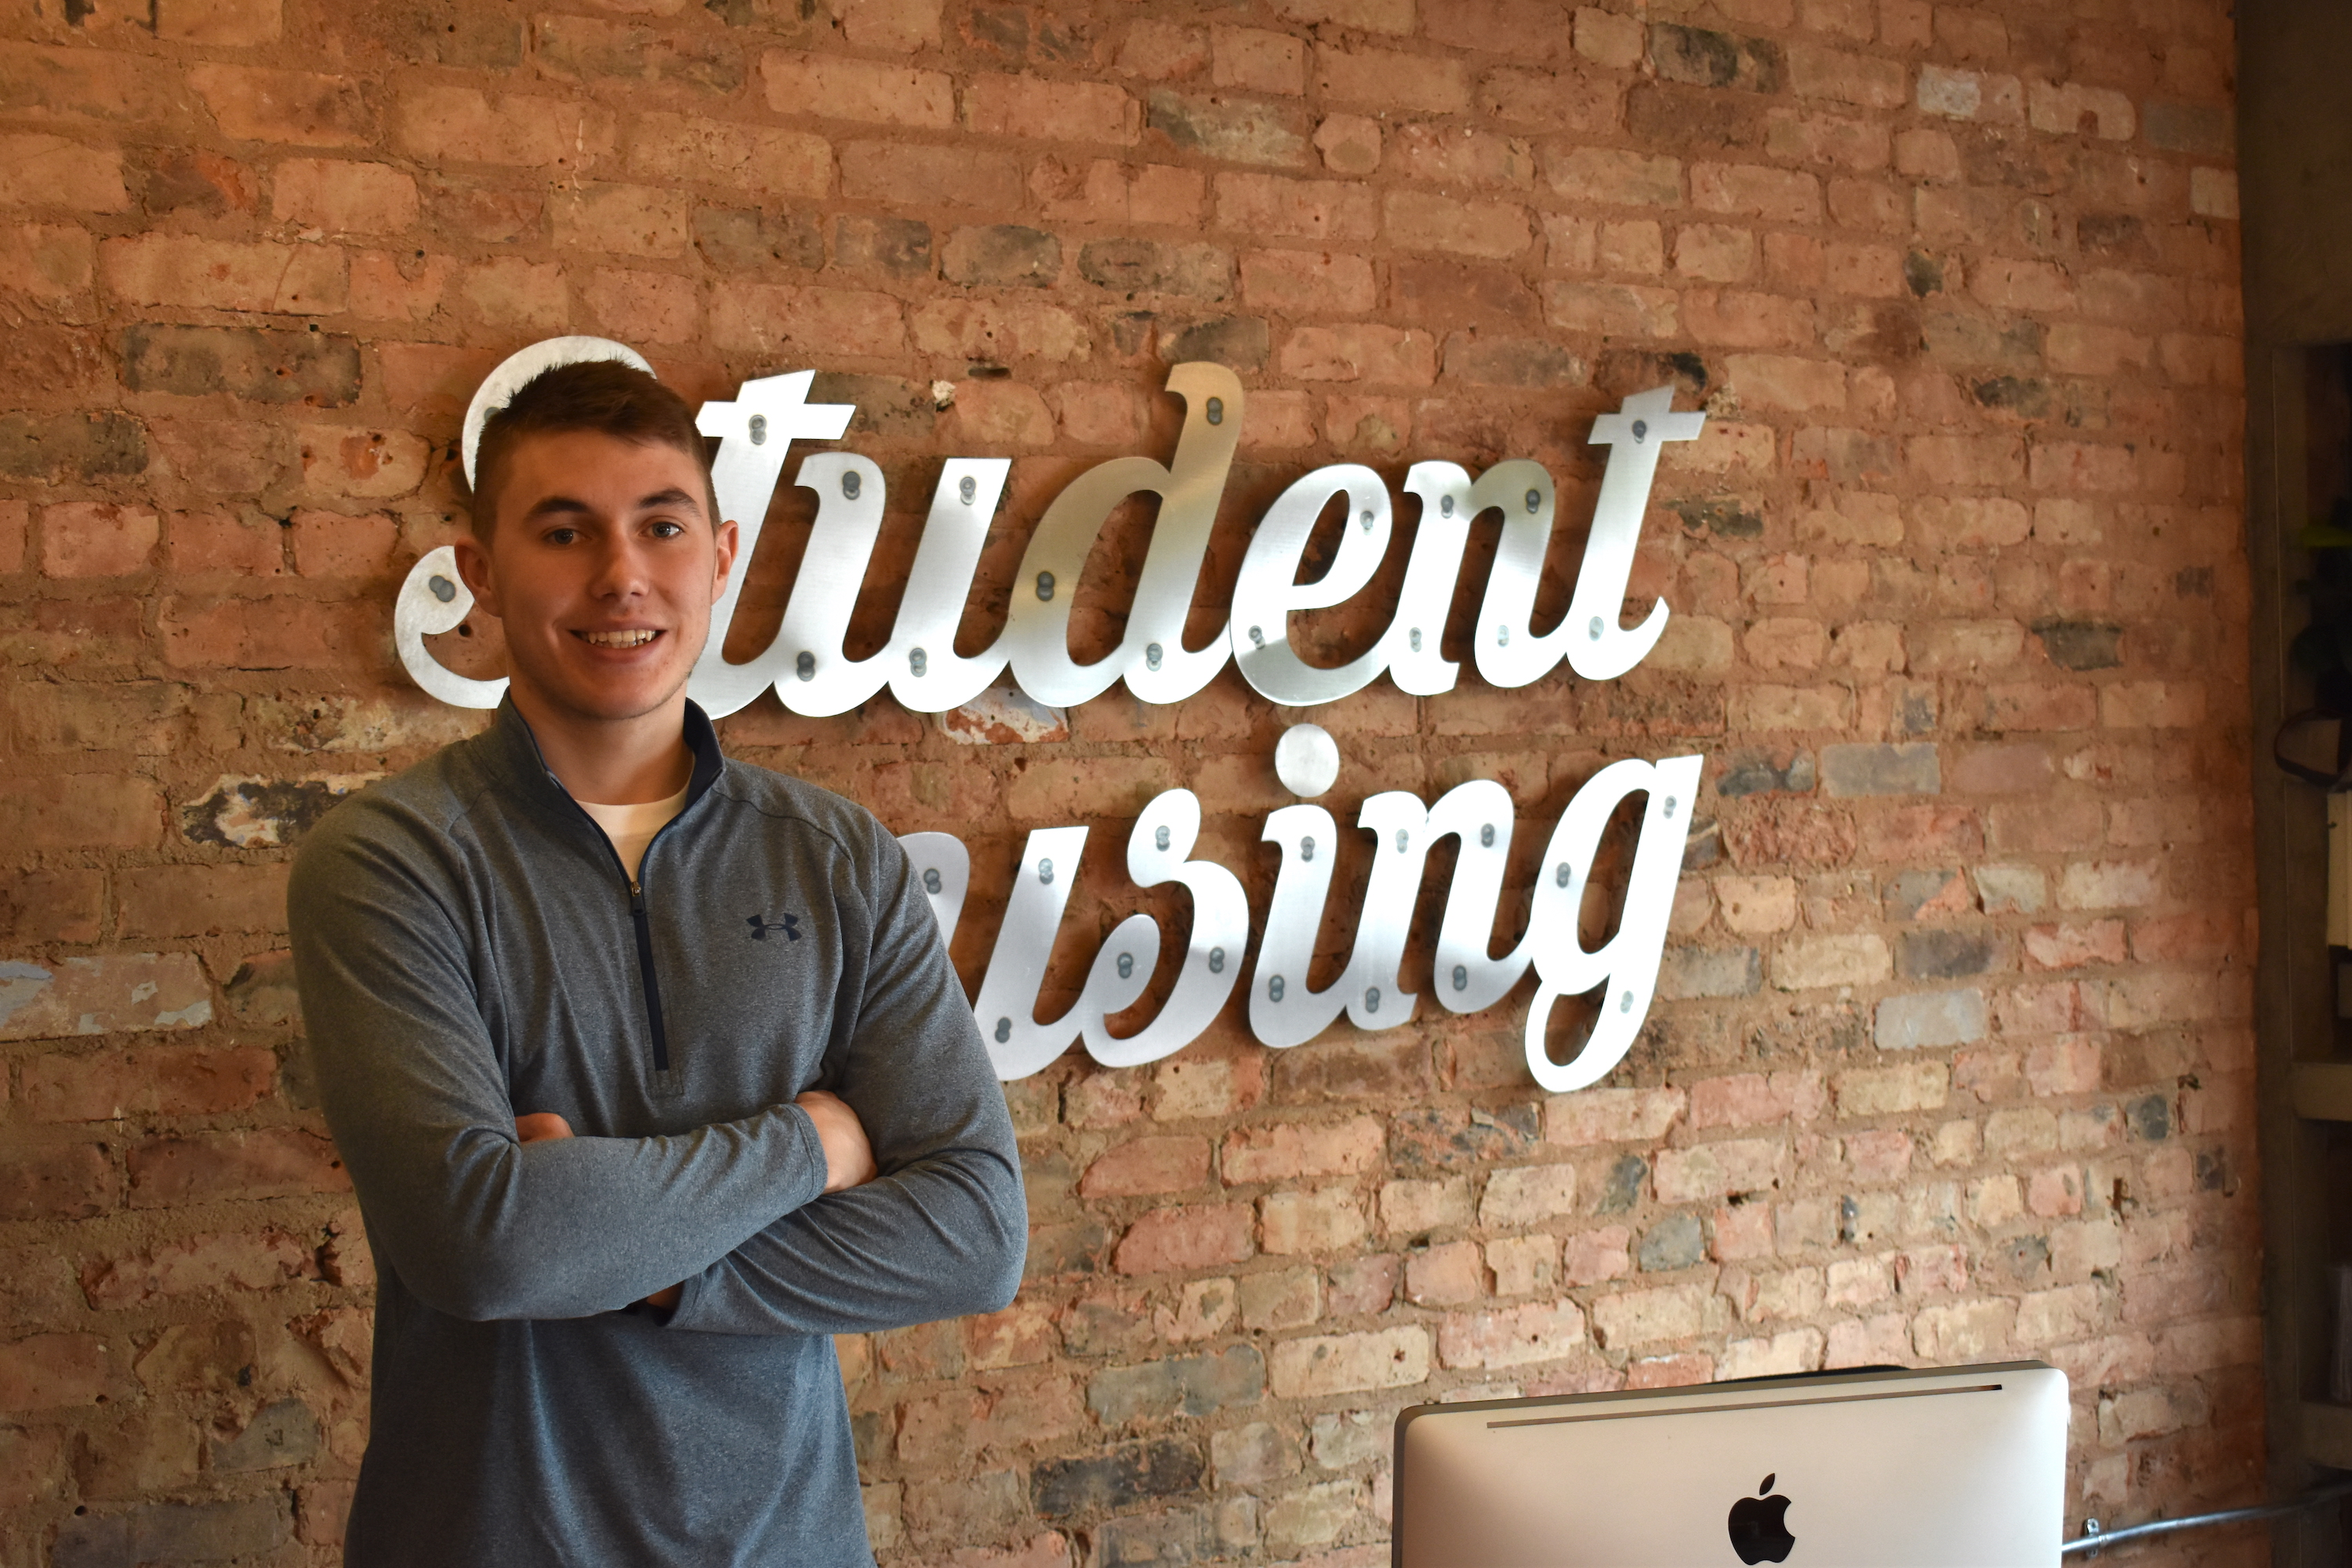 STUDENT HOUSING MAKES ITS FIRST HIRE FOR NEW NOTTINGHAM OFFICE